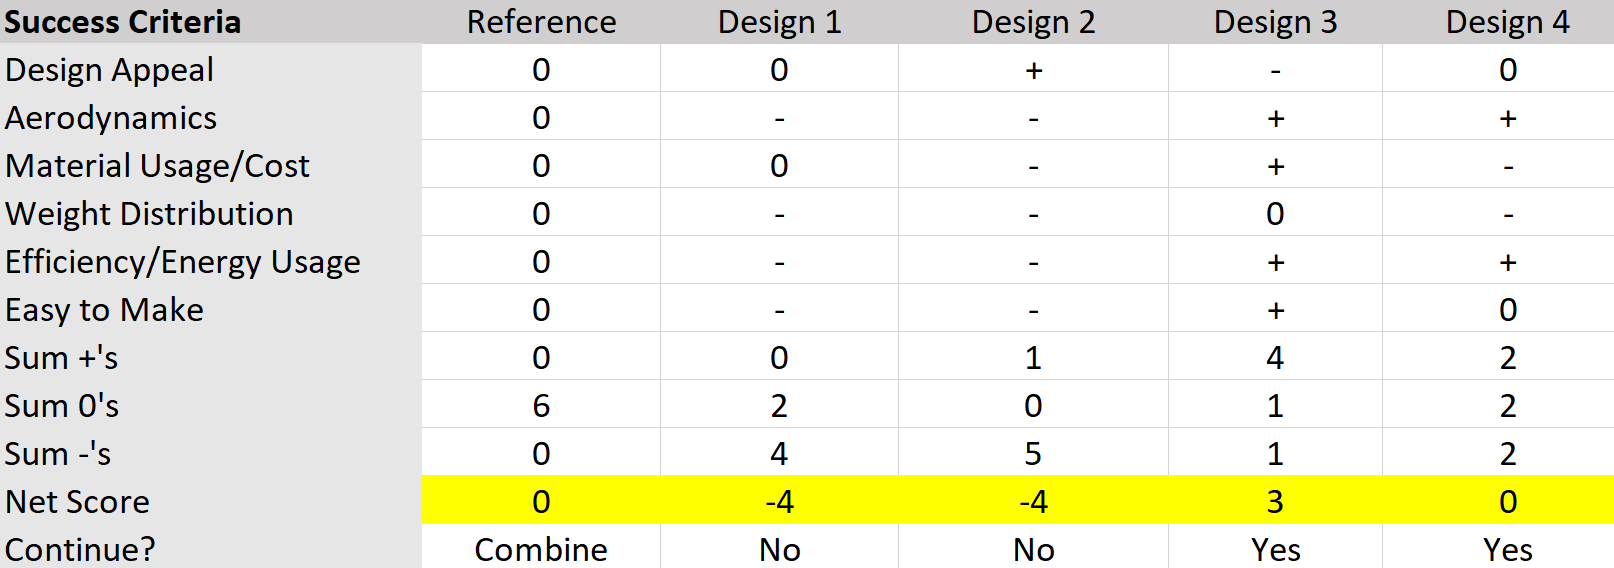 https://cpb-us-w2.wpmucdn.com/u.osu.edu/dist/7/72641/files/2019/01/Scoring-Table-s2i5i6.png